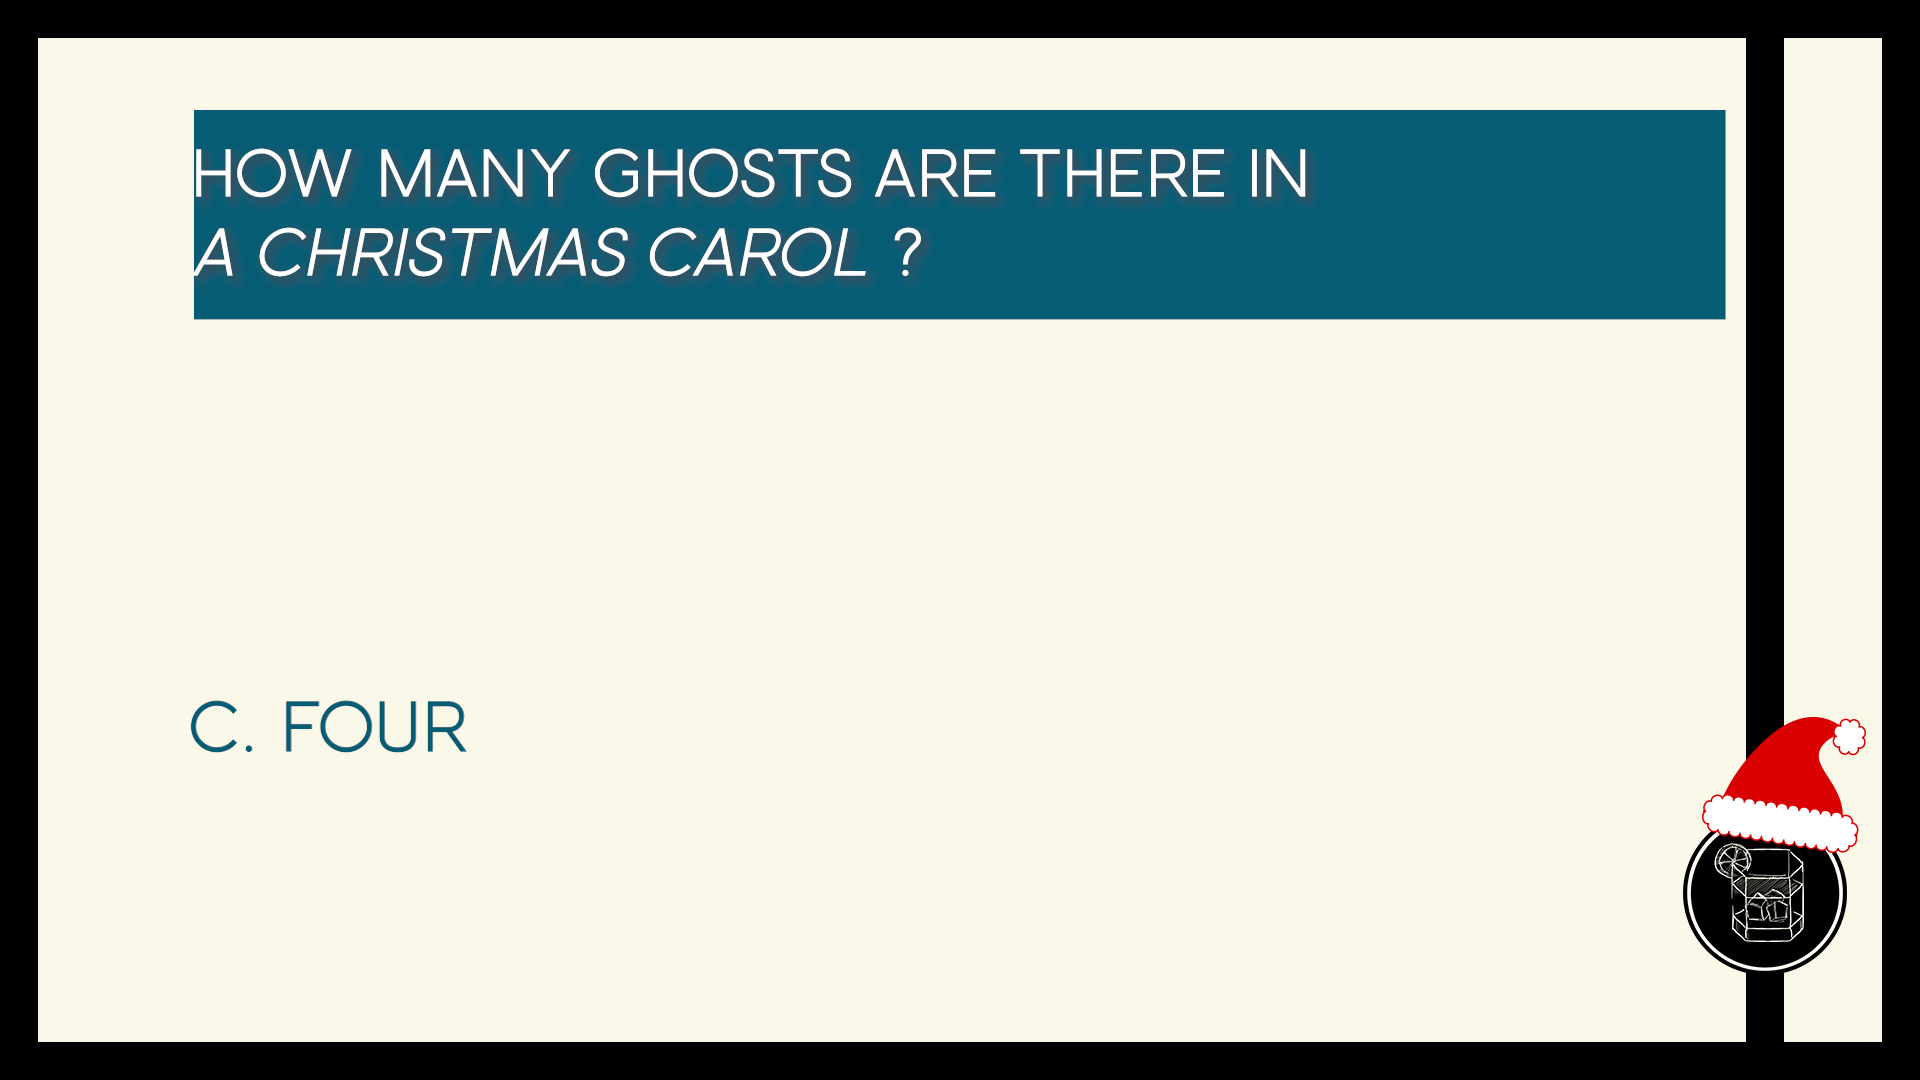 How many ghosts are there in A Christmas Carol ?